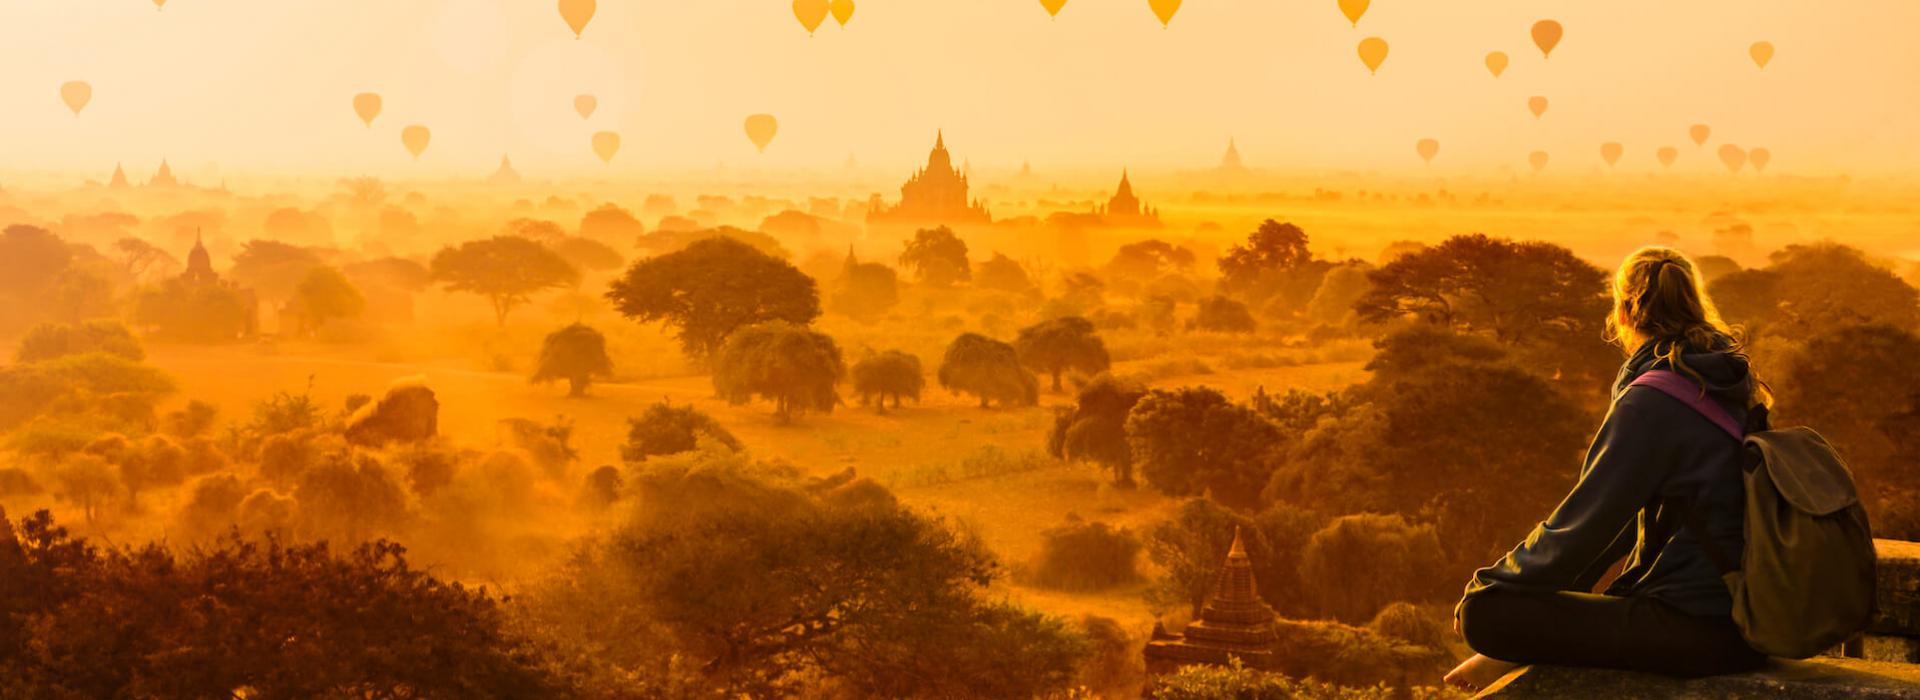 A woman sitting on ruins in Myanmar, looking out at a yellow-red sky full of hot air balloons.